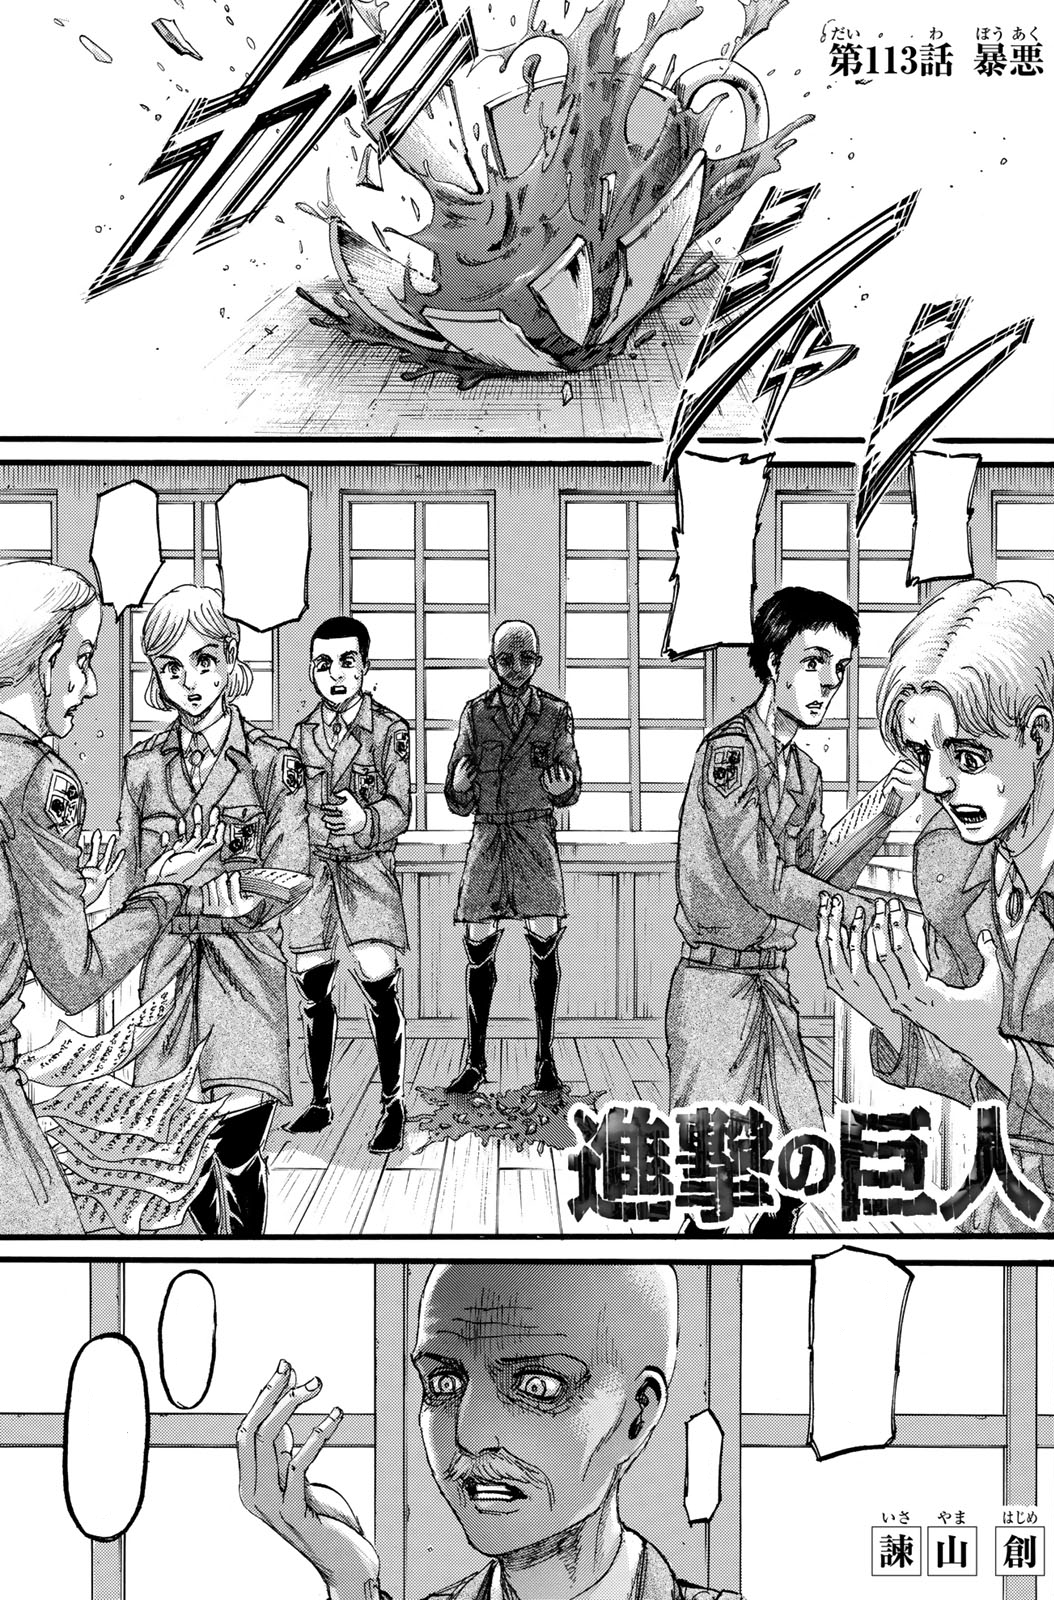 Attack on Titan Chapter 113